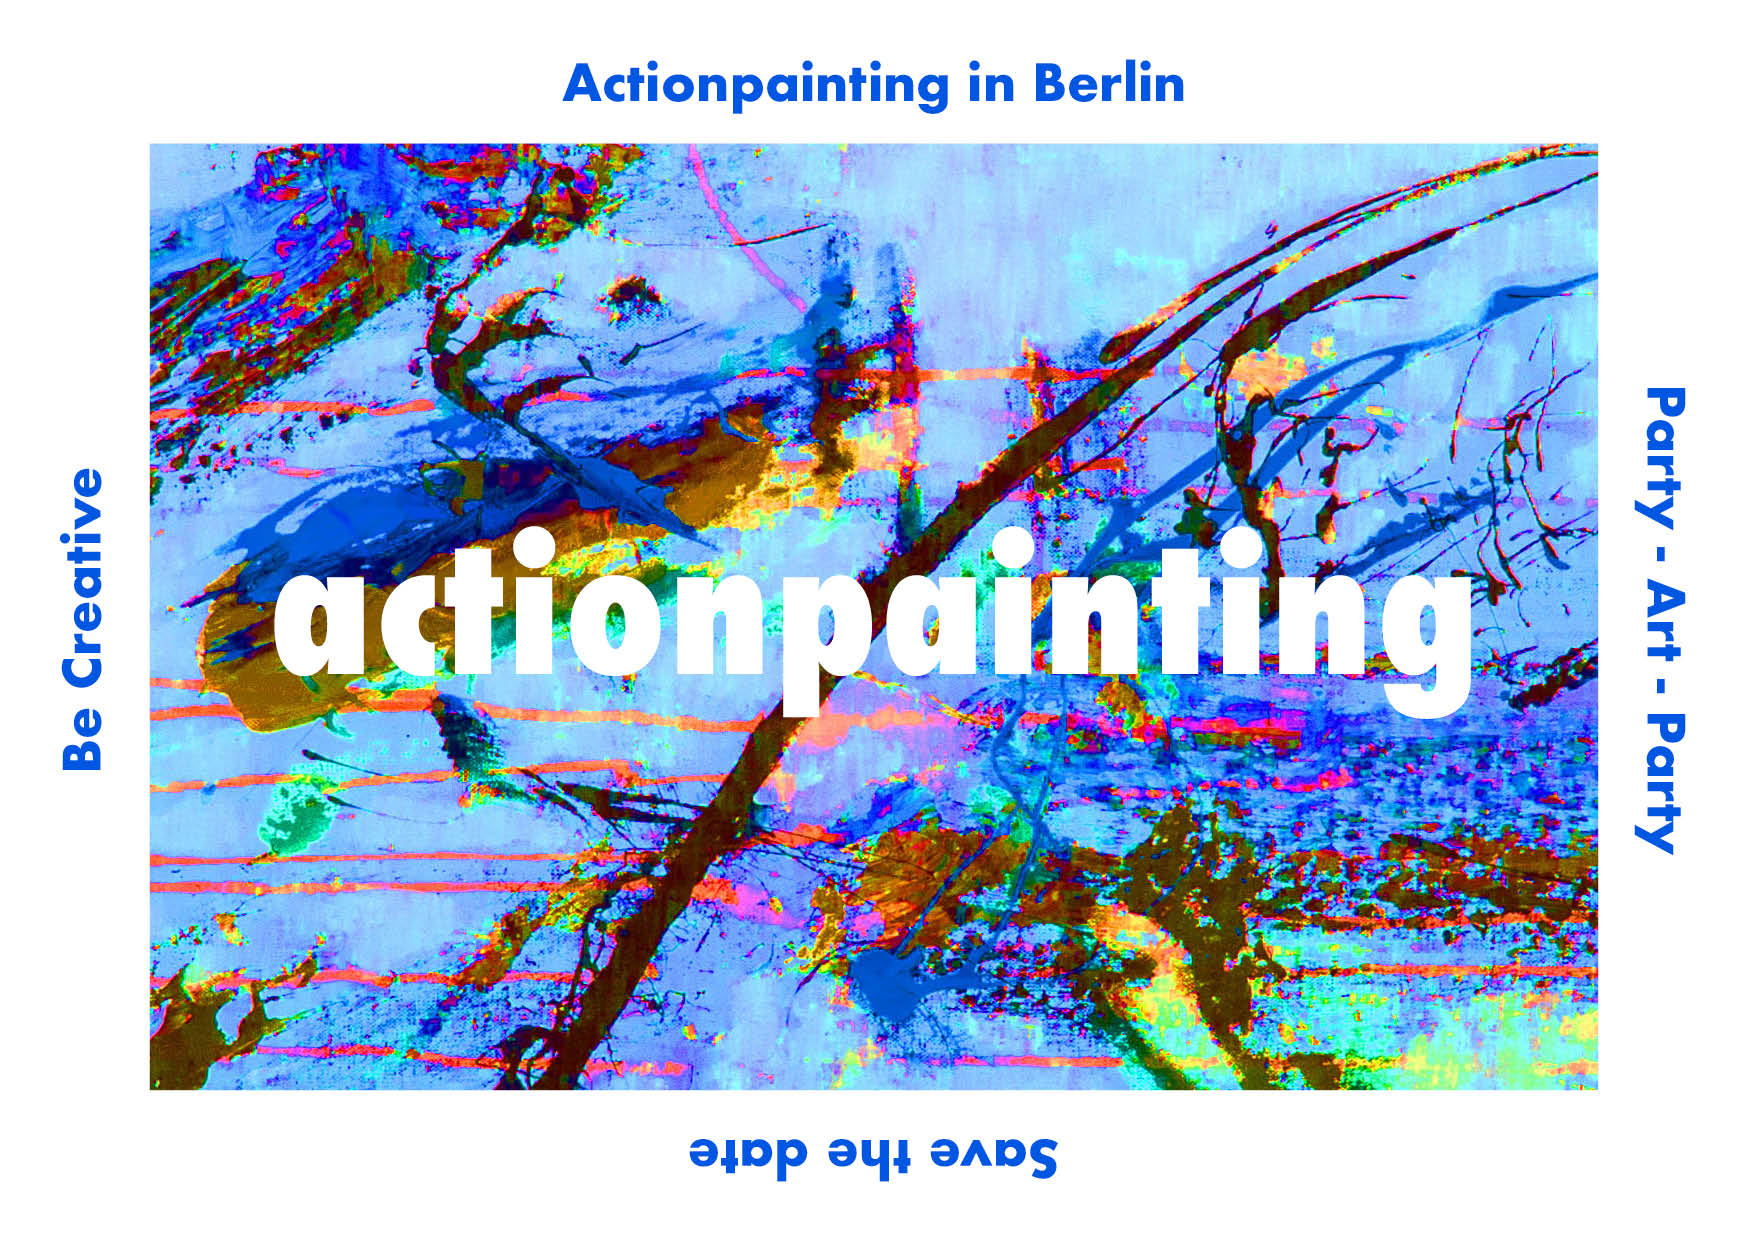 Actionpainting_Flyer.jpg